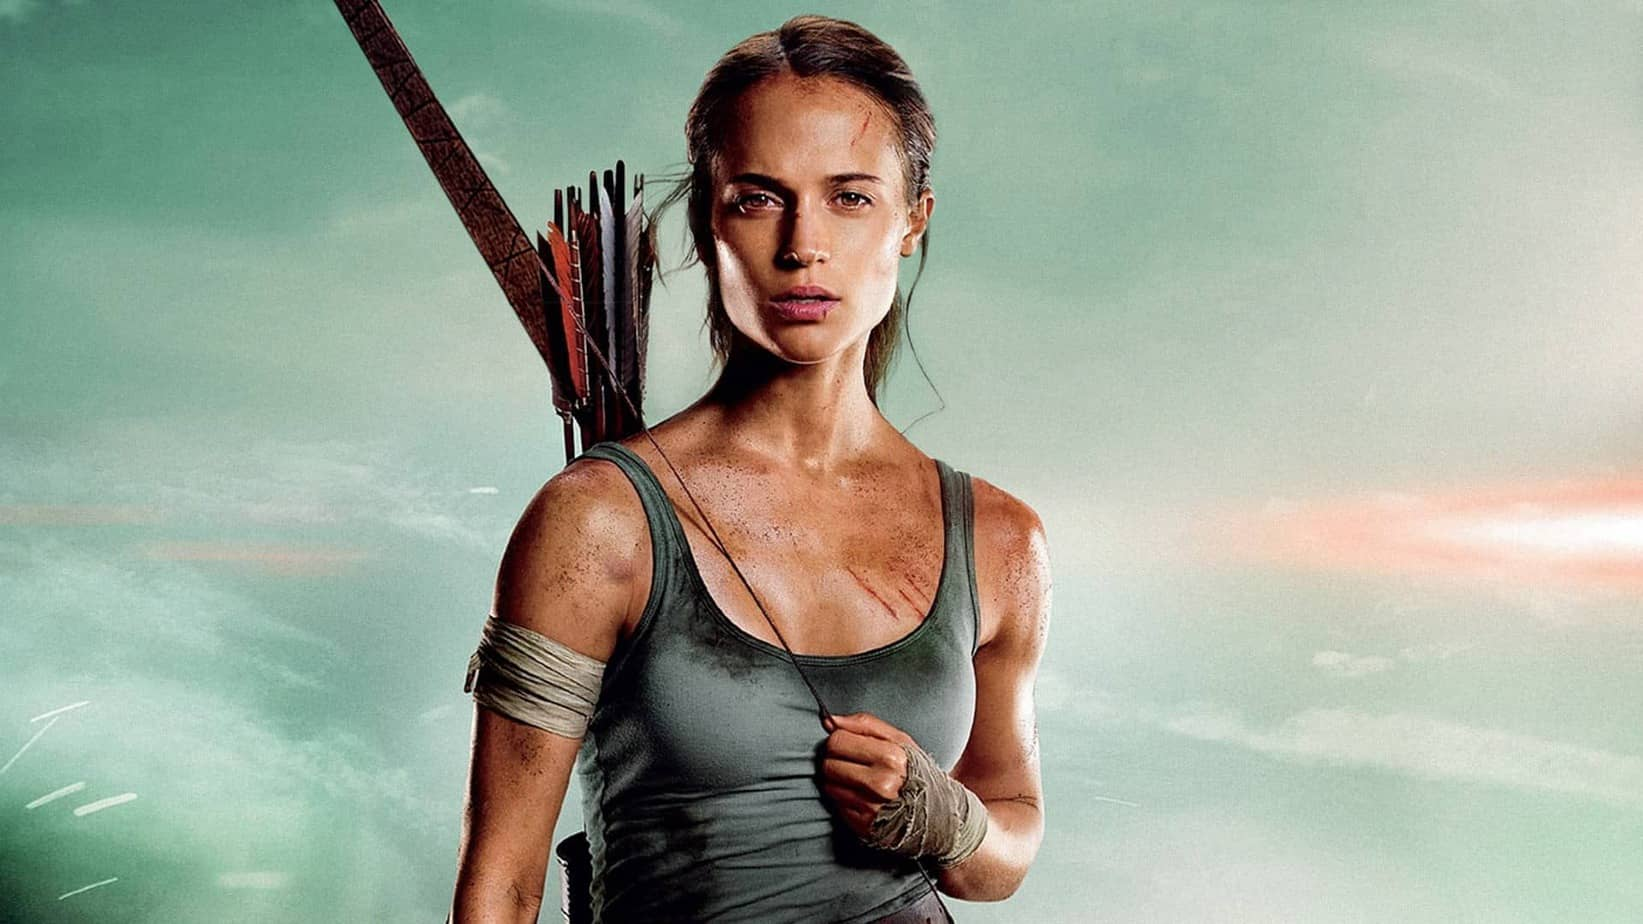 2018's Tomb Raider starring Alicia Vikander